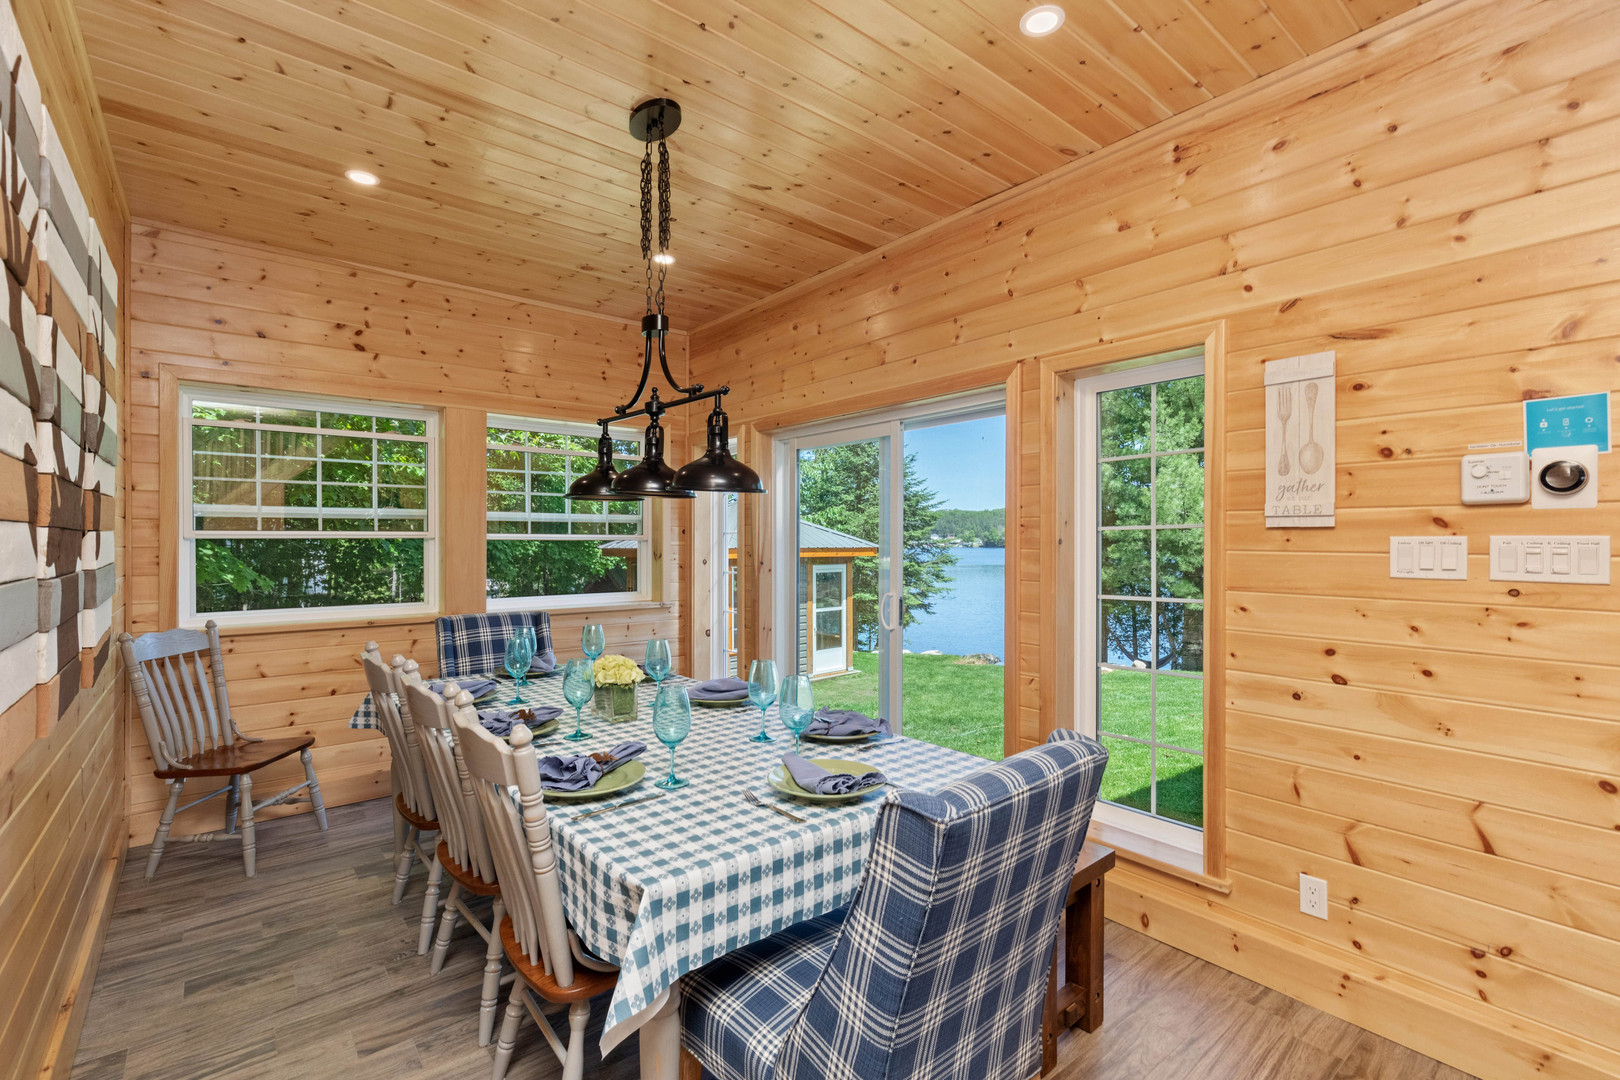 Charming Muskoka dining room with lakefront view